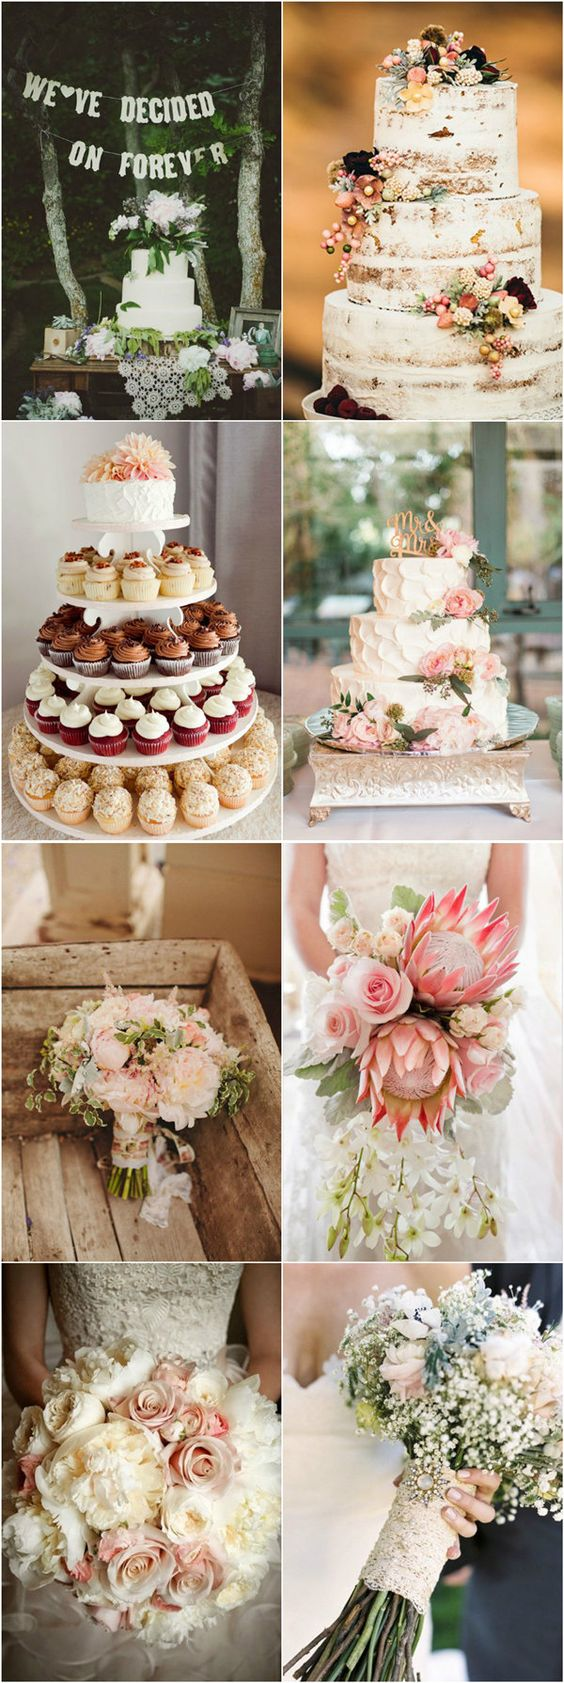 romantic vintage wedding cake and bouquets ideas